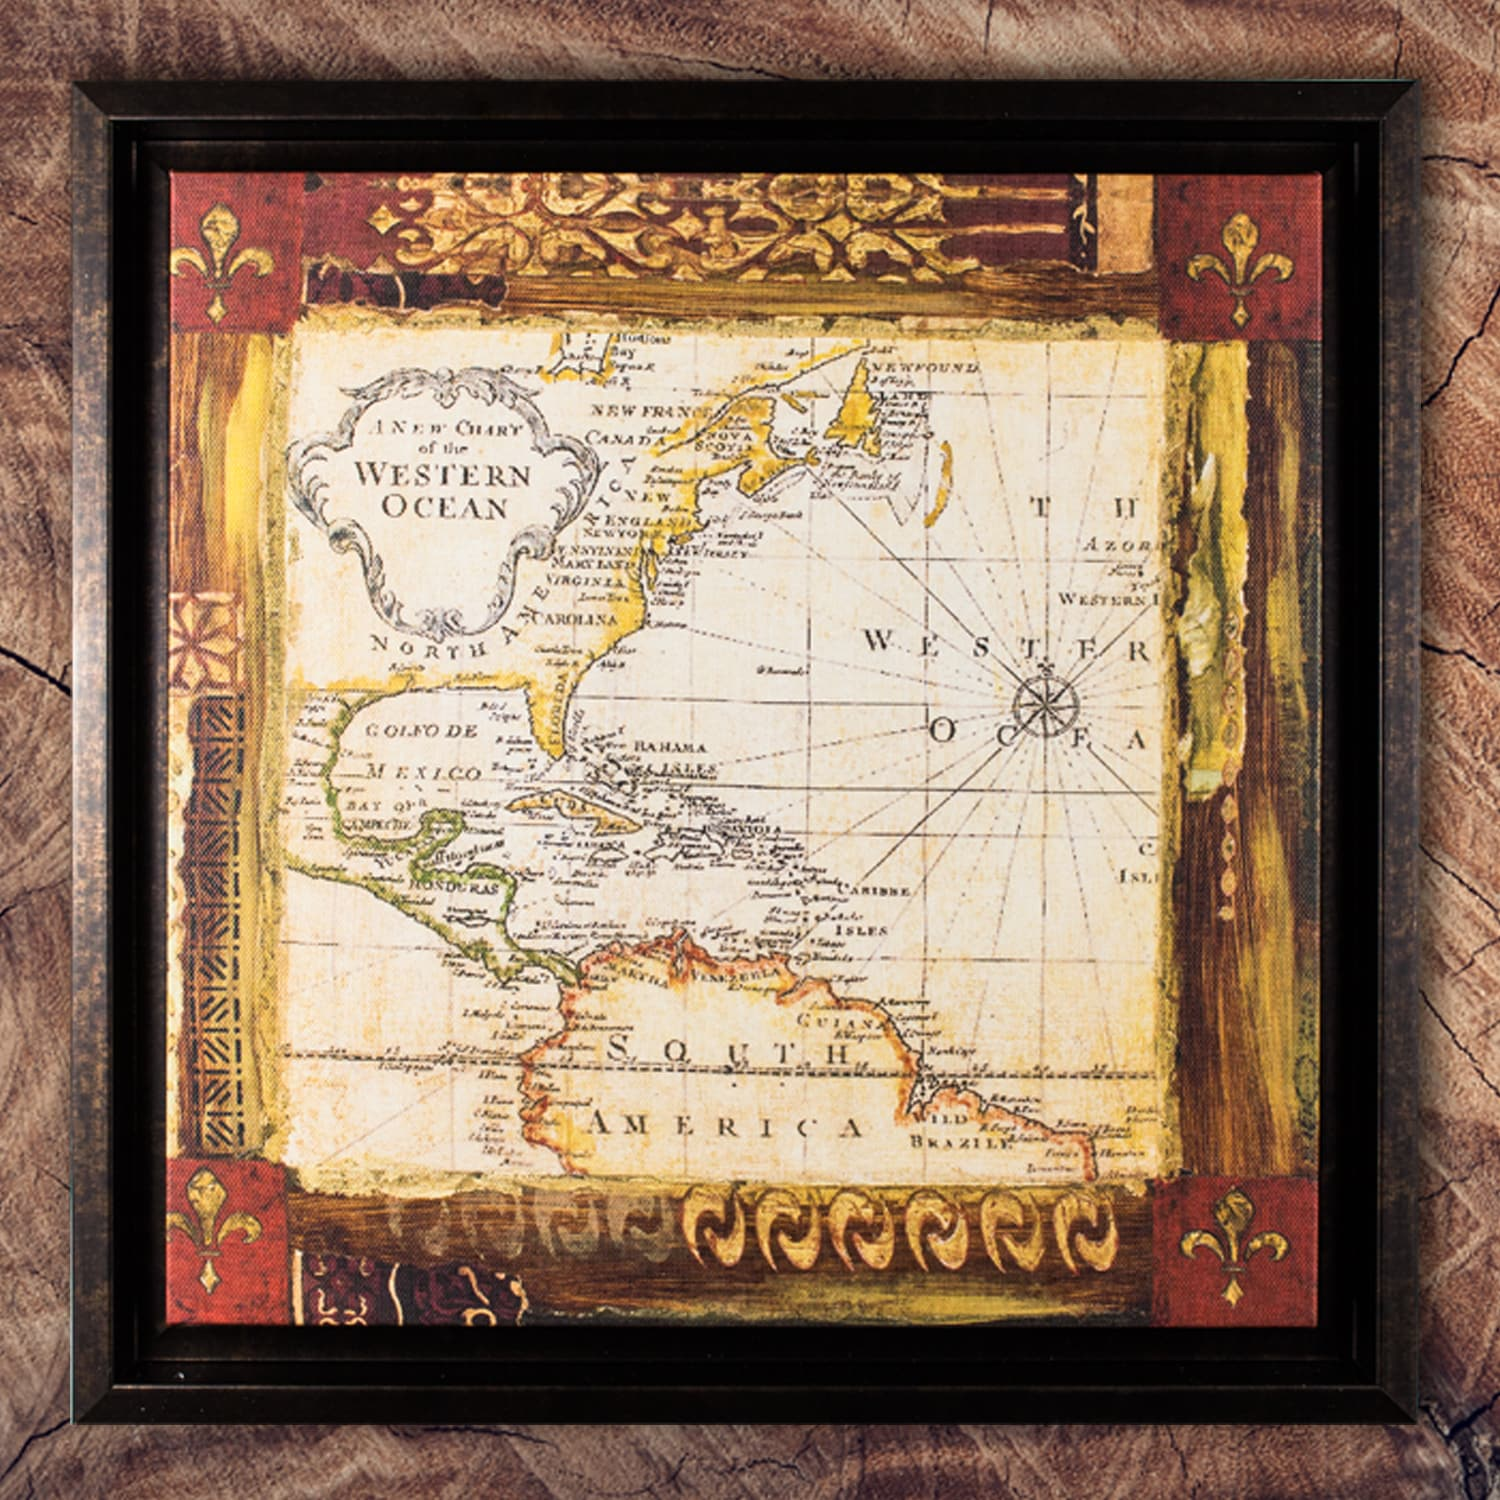 American Art Decor Old World Map Framed Painting Print on Canvas